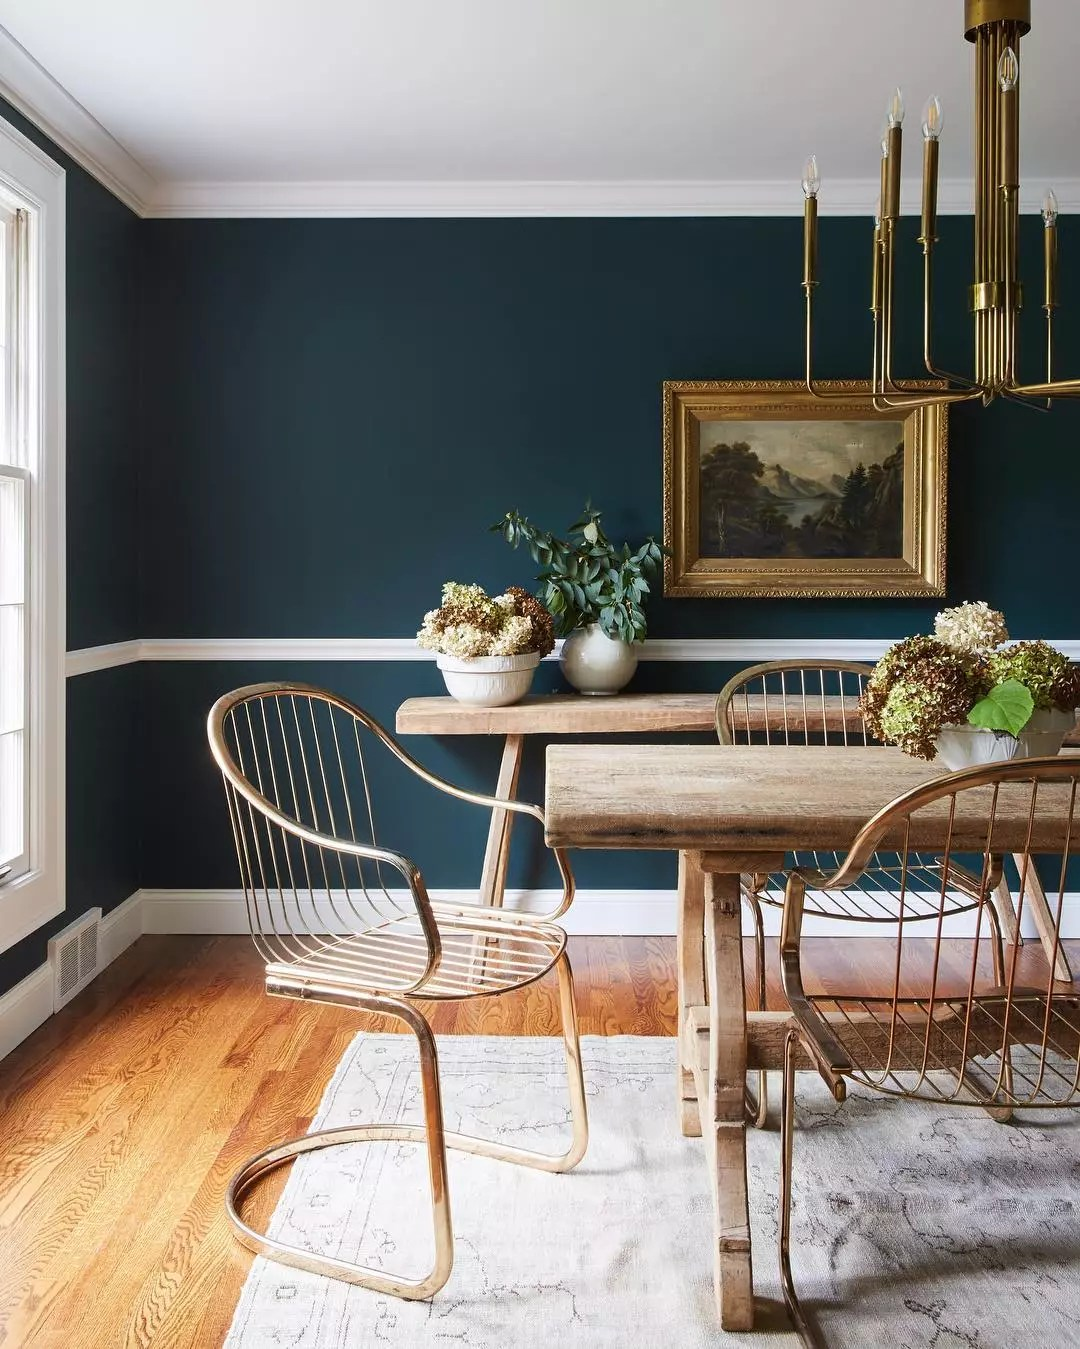 Dining room painted in forest green color with wood table and chairs. Photo by Instagram user @leannefordinteriors